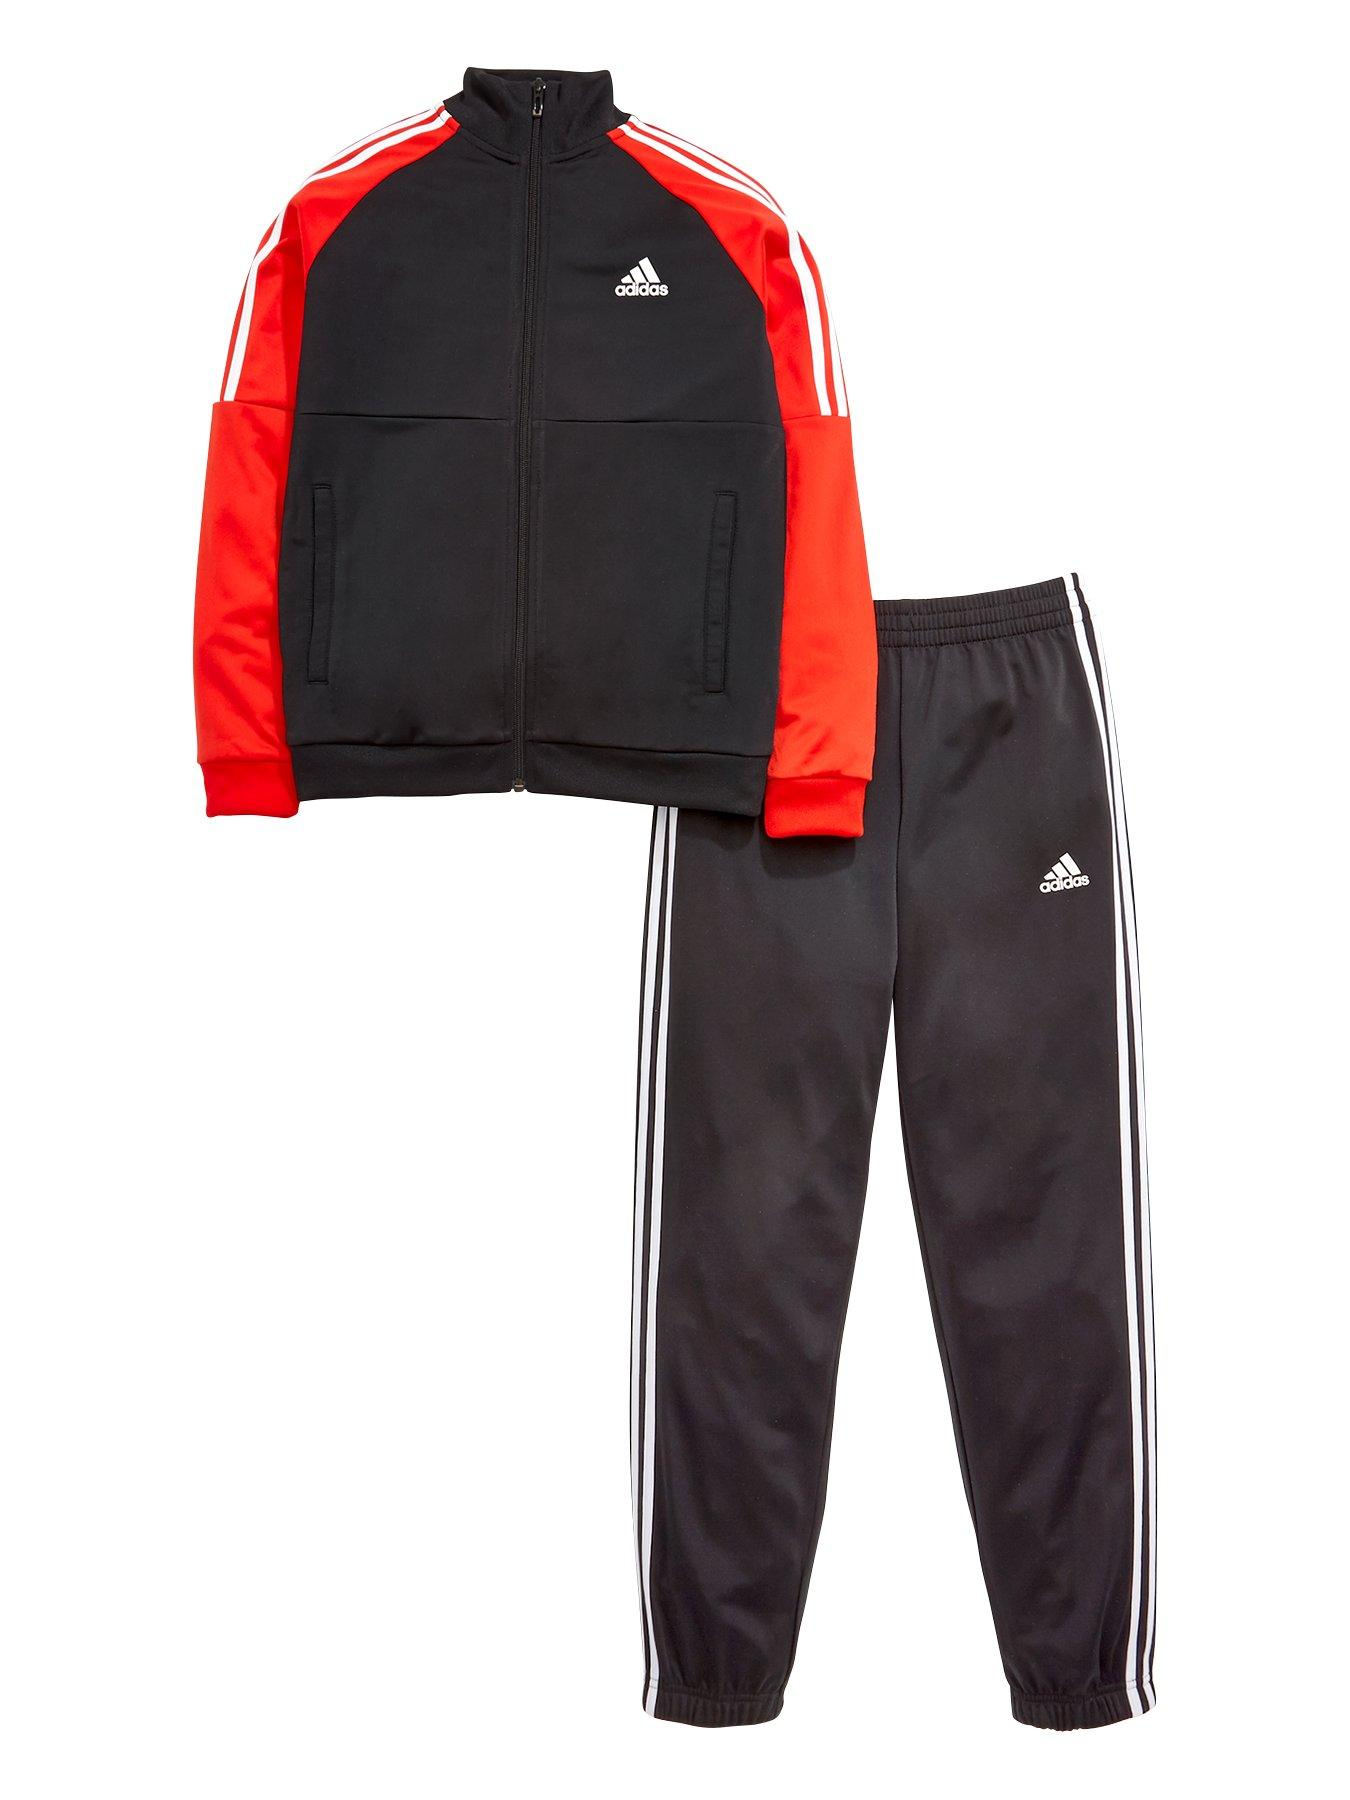 adidas suit for kids